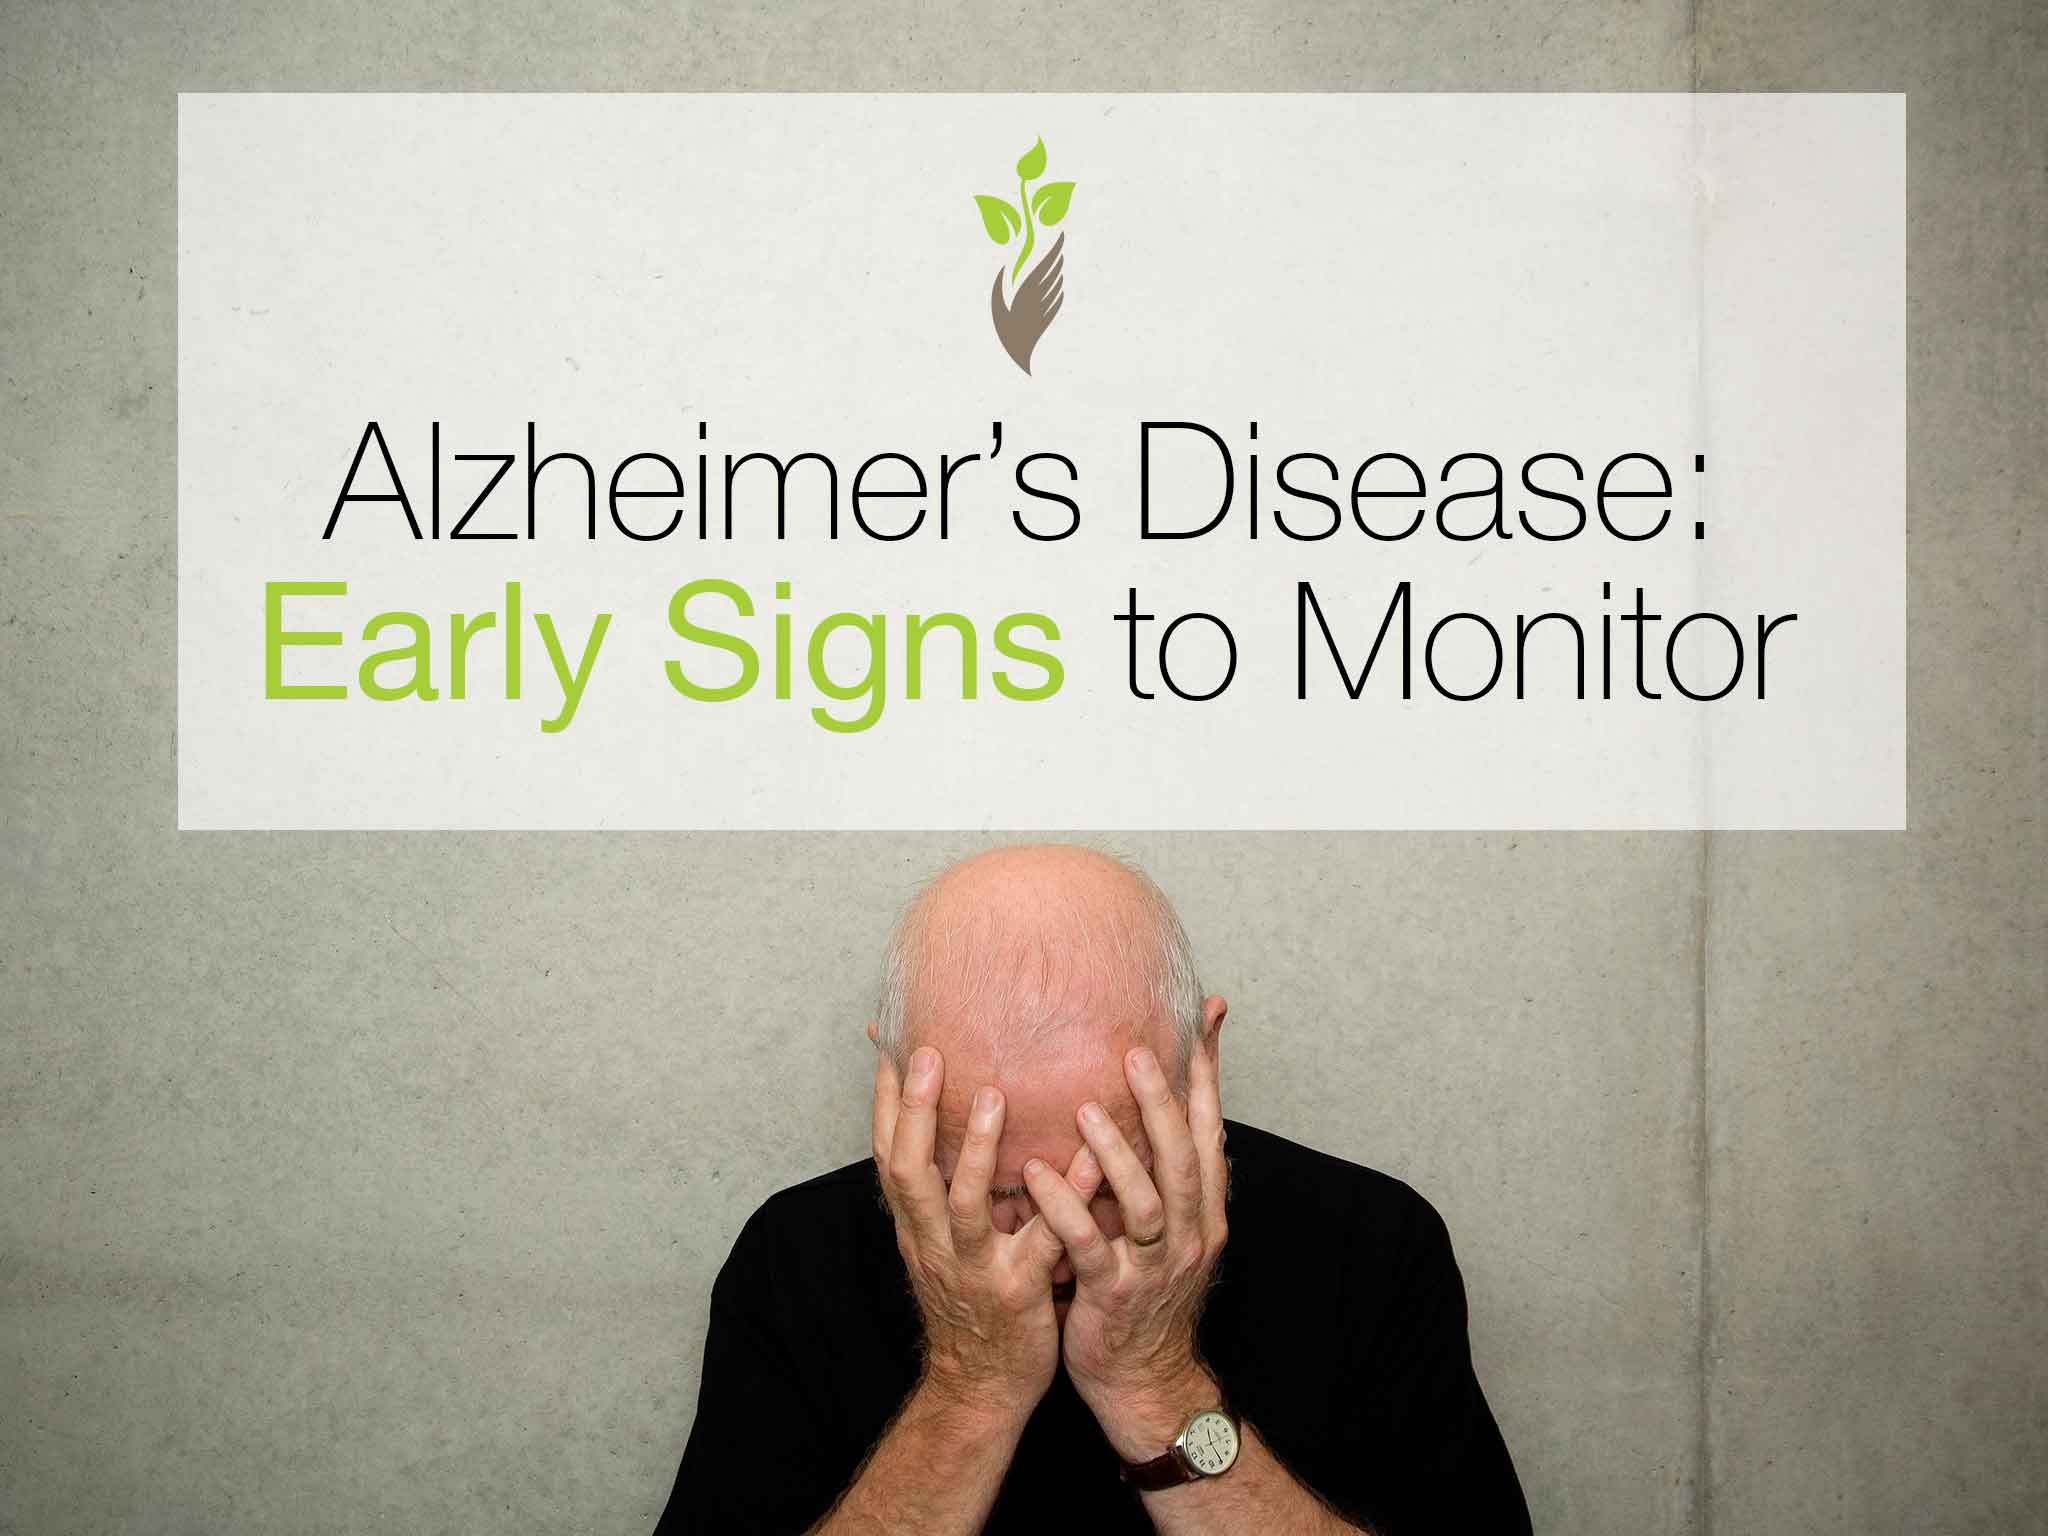 Alzheimer's Disease: Early Signs to Monitor